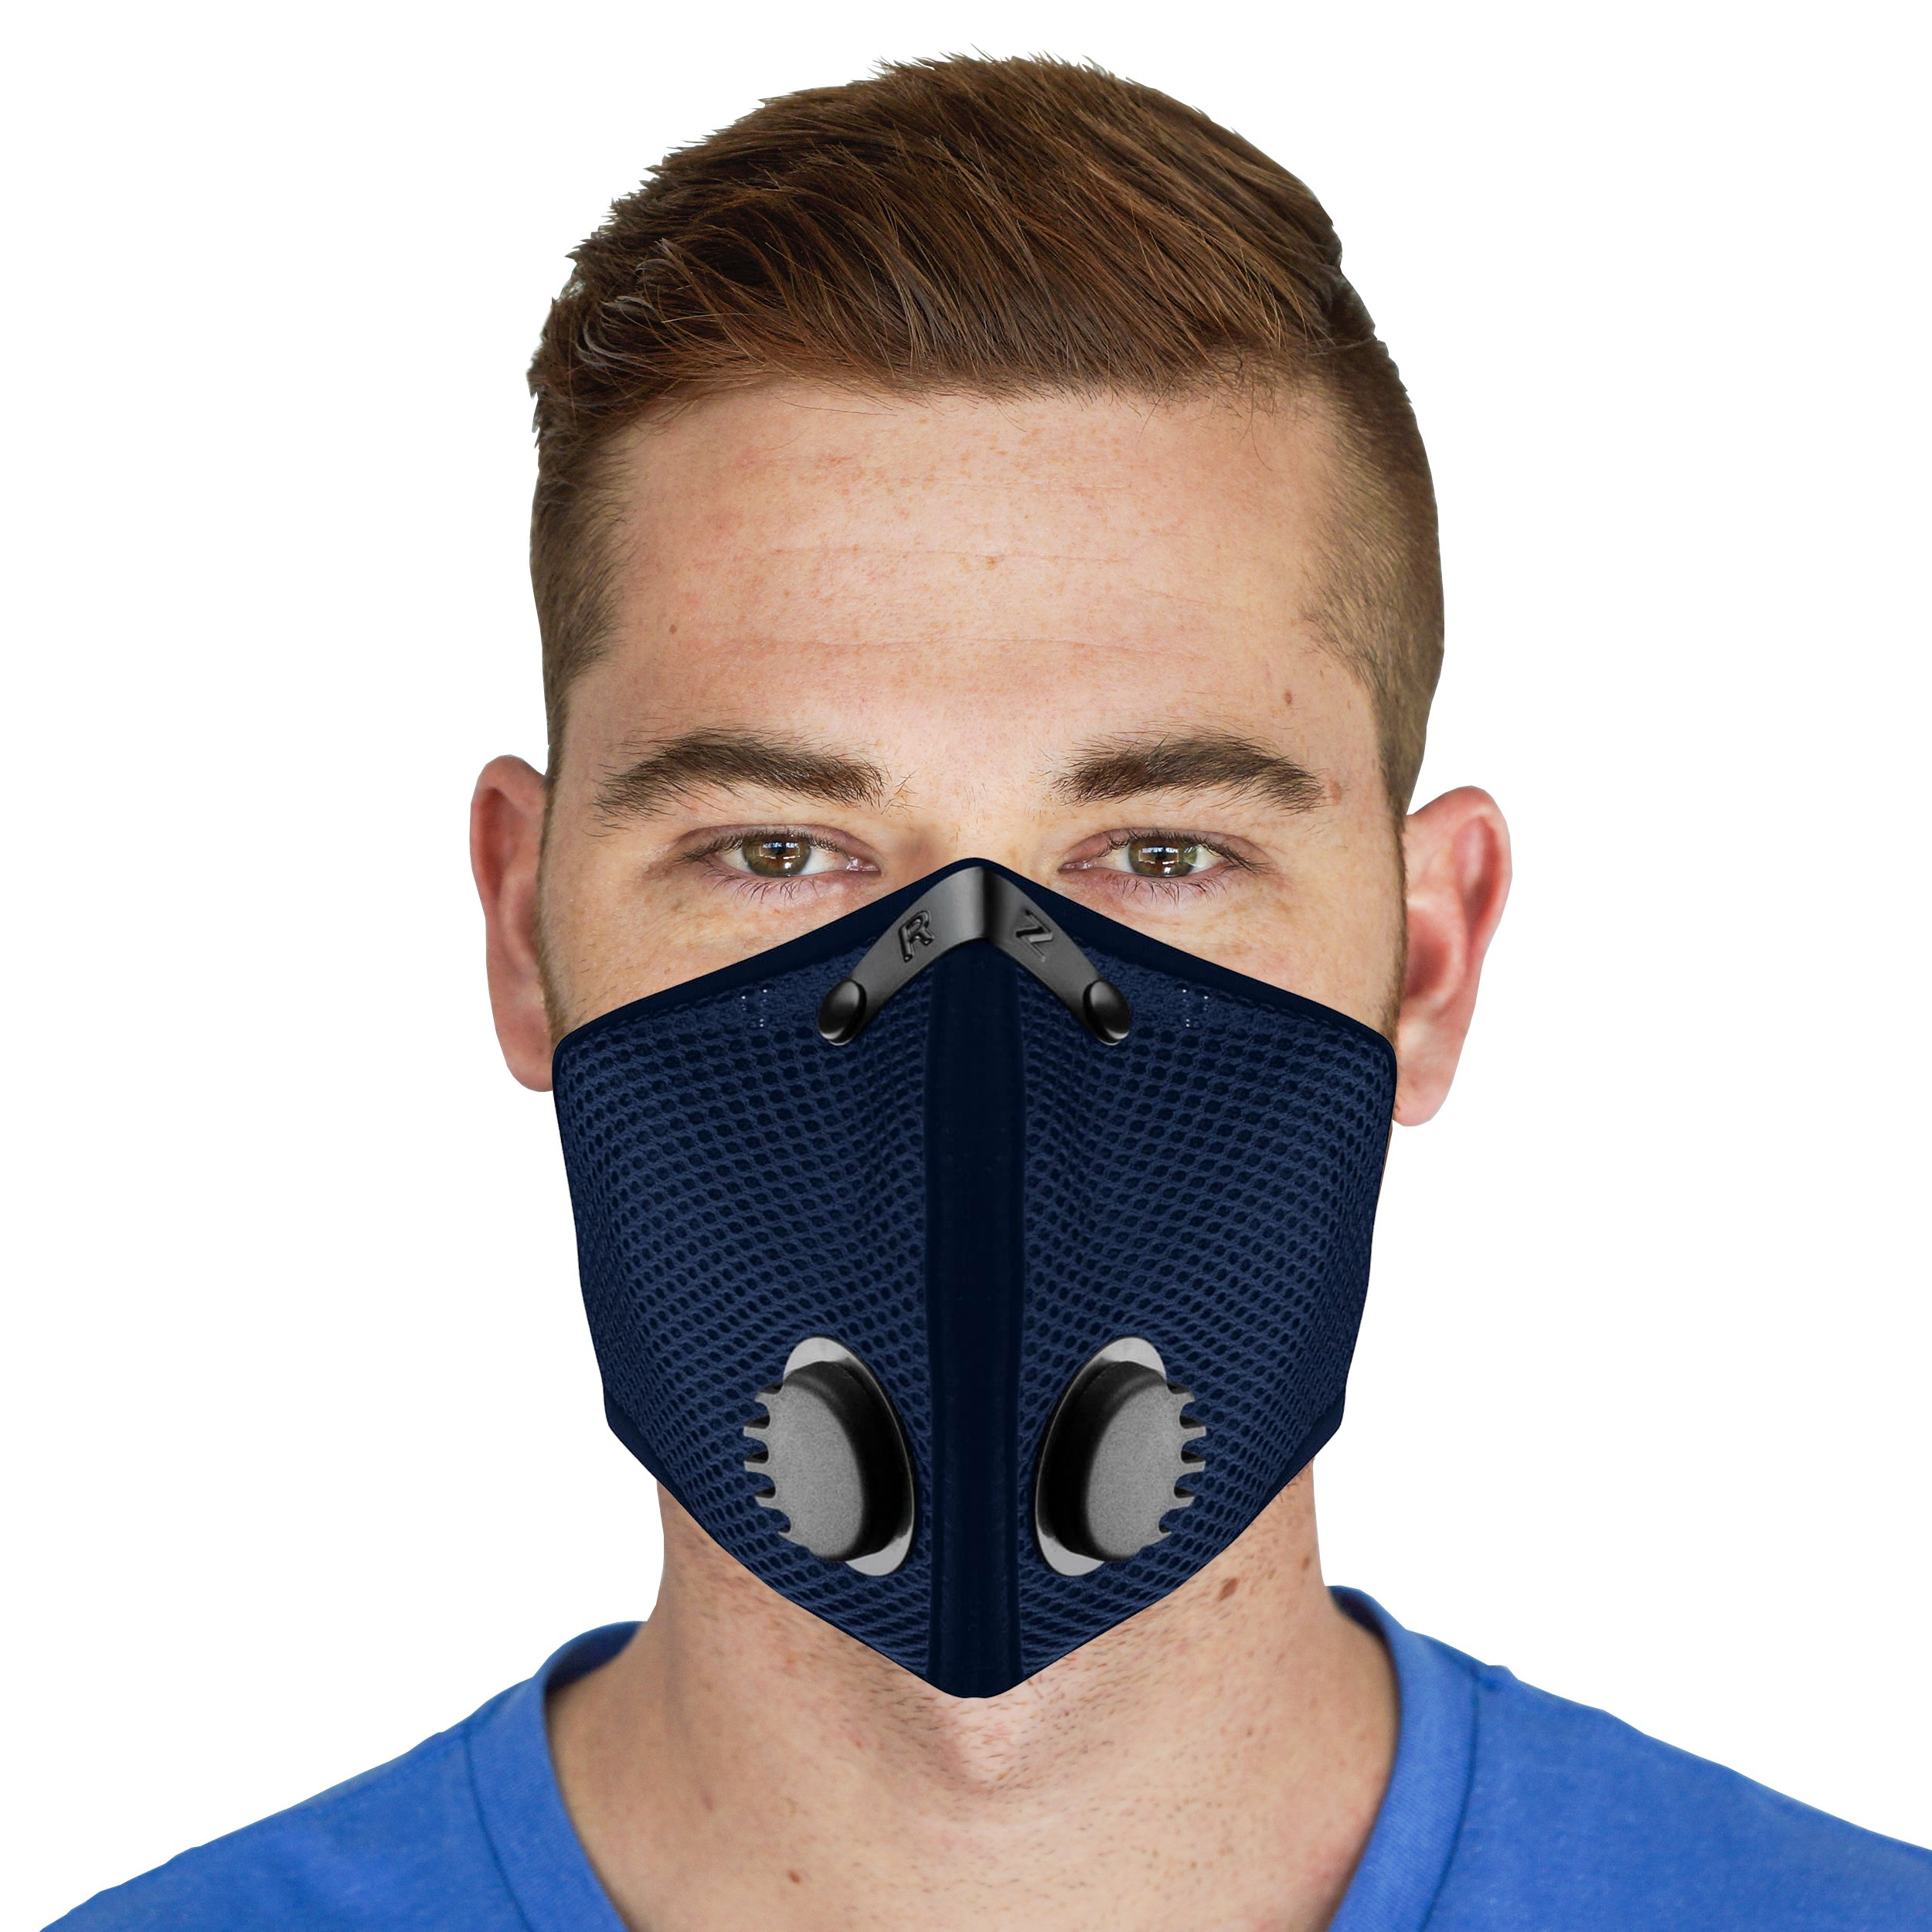 M2 Mesh Reusable Dust/Pollution RZ Mask - Navy - X-Large by RZ Mask